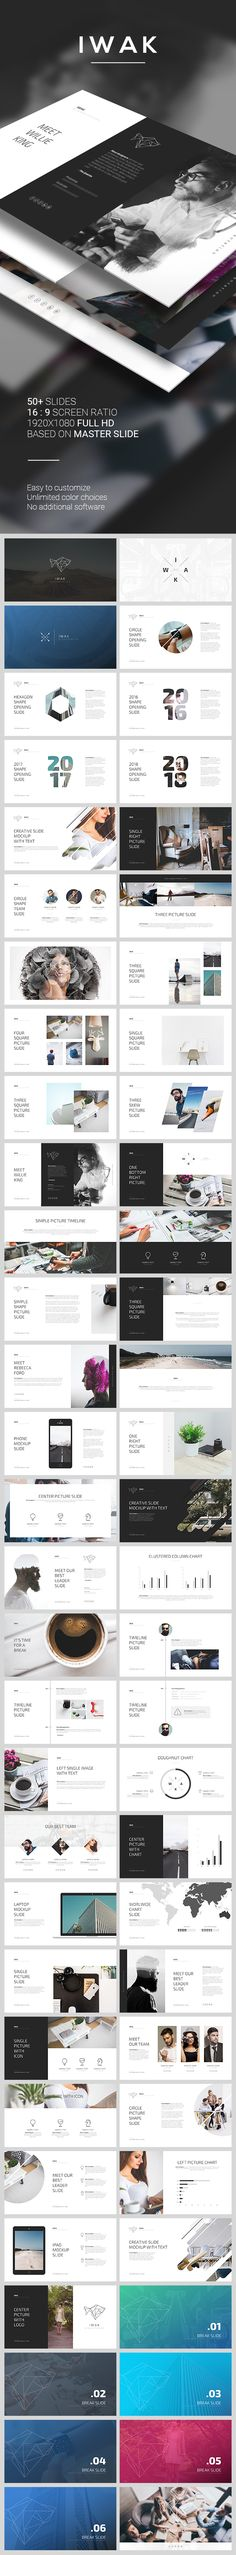 IWAK PowerPoint Template